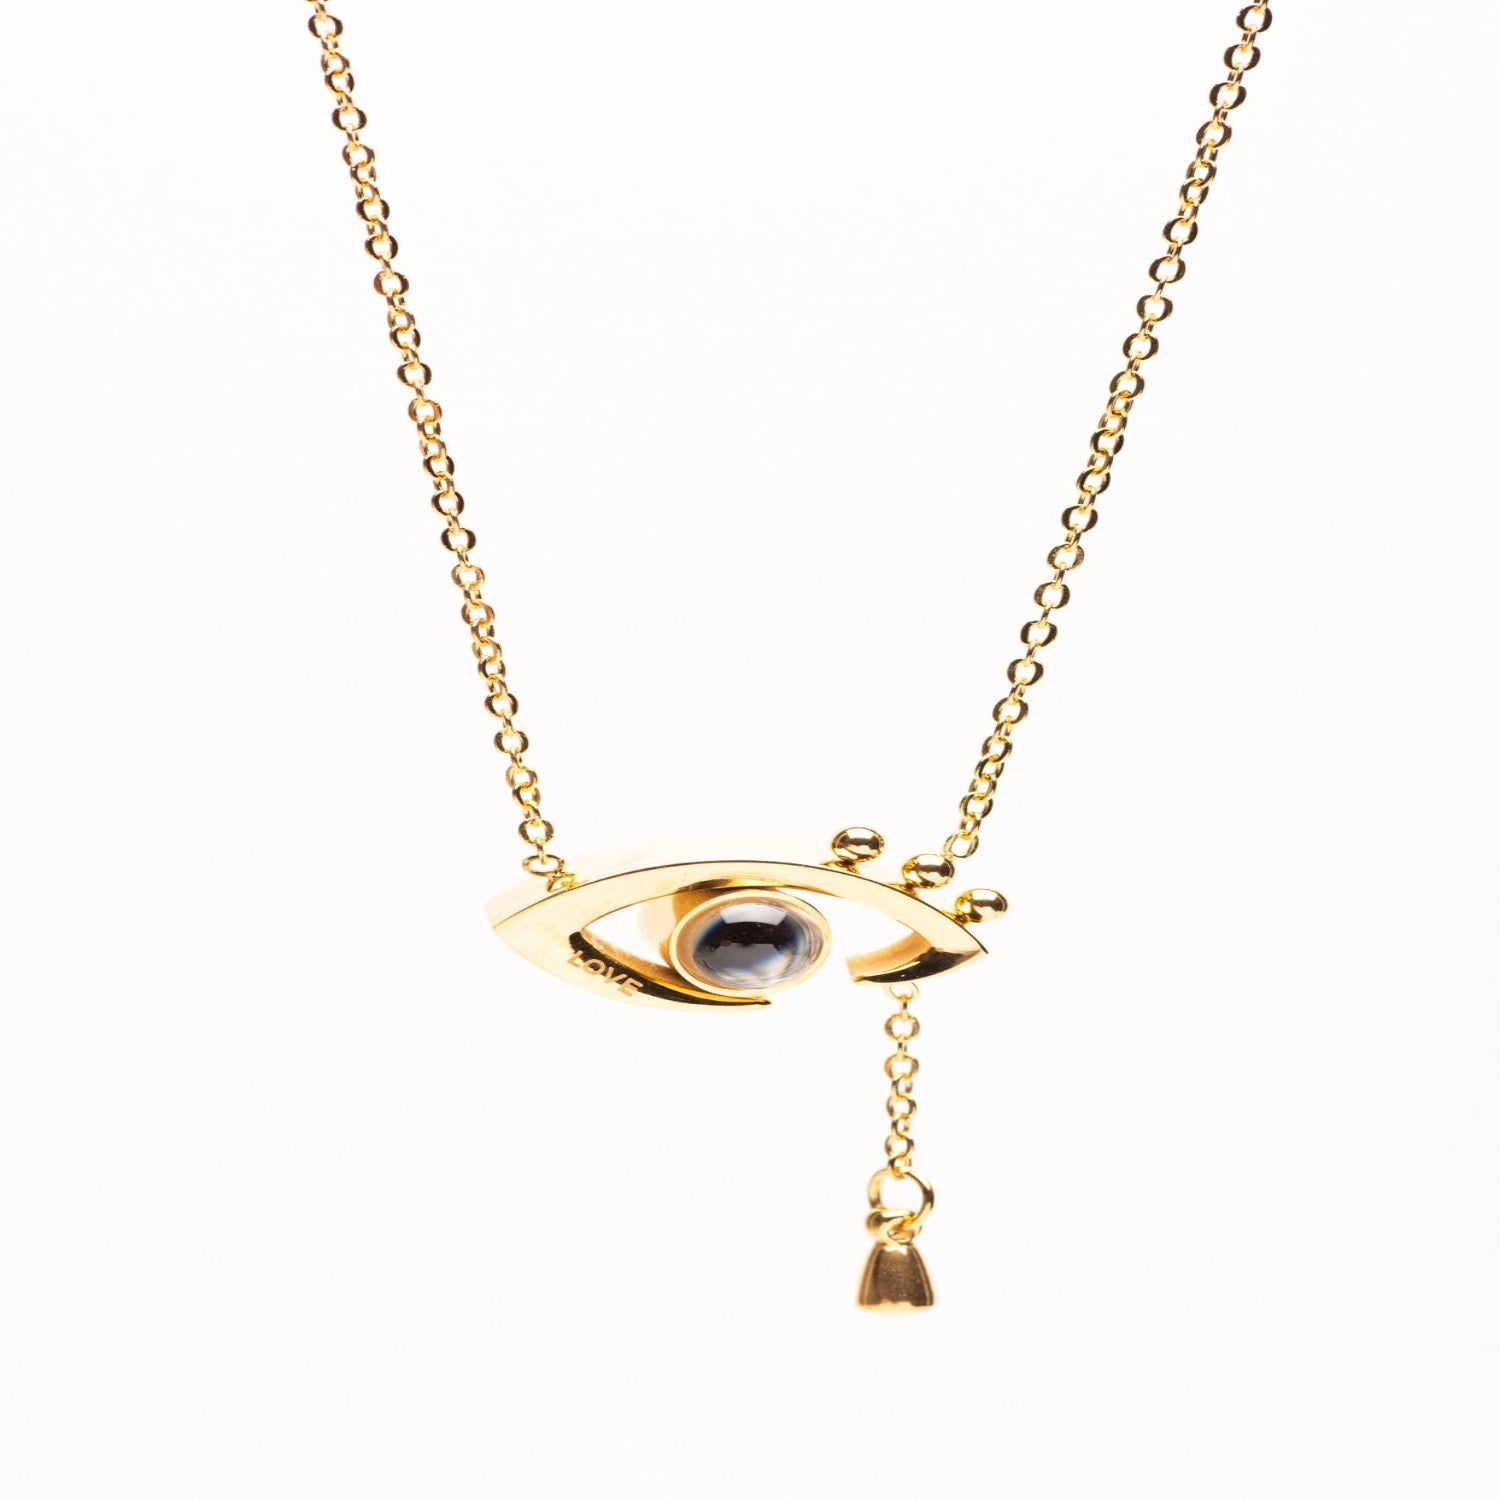 Stainless Steel Gold tone evil eye necklace